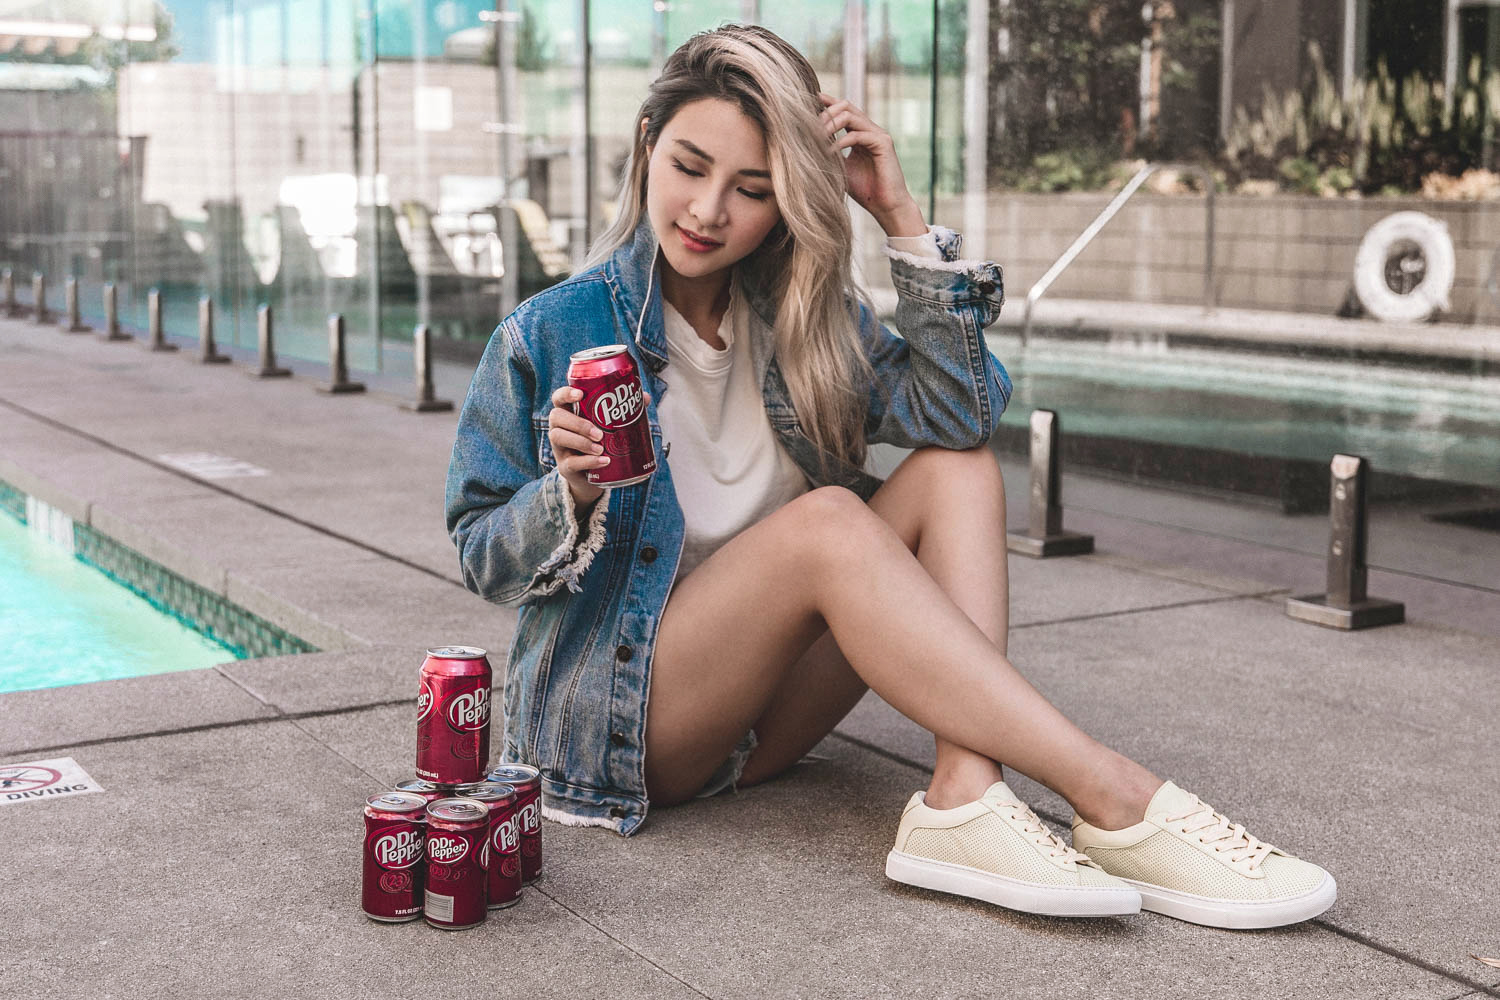 Staying Refreshed with Dr Pepper   Atsuna Matsui